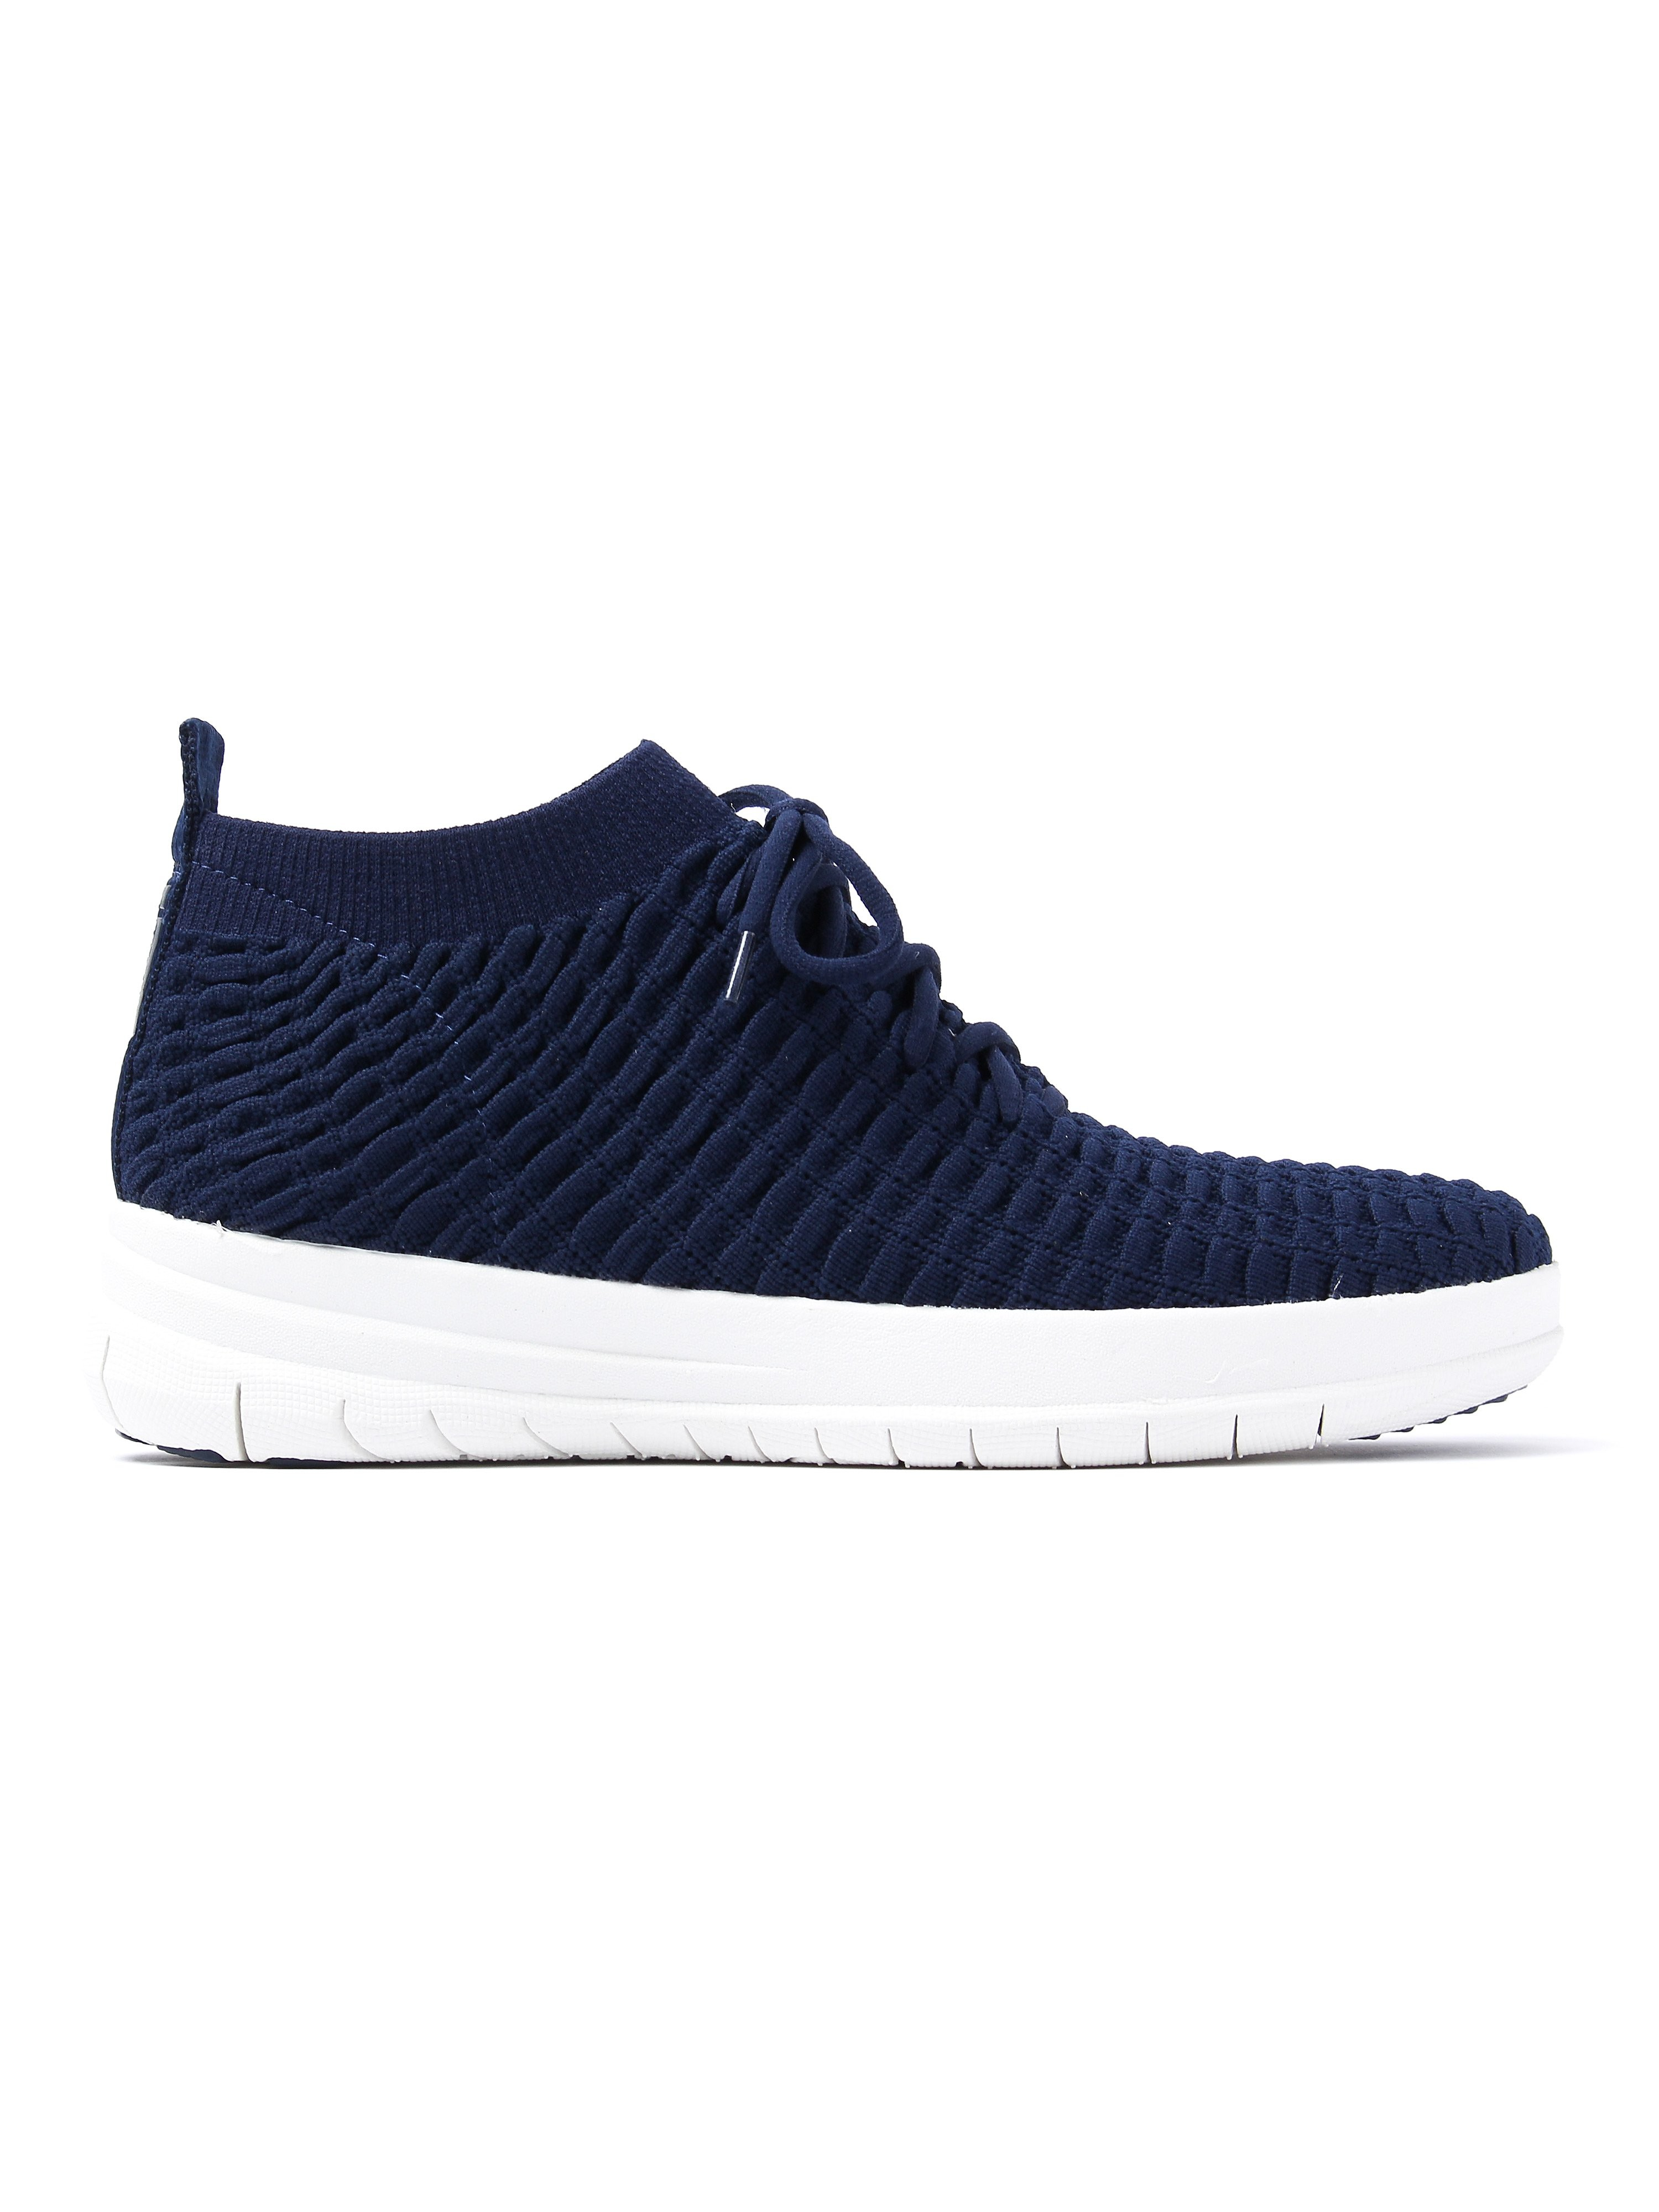 FitFlop Women's Uberknit Waffle High Top Trainers - Midnight Navy